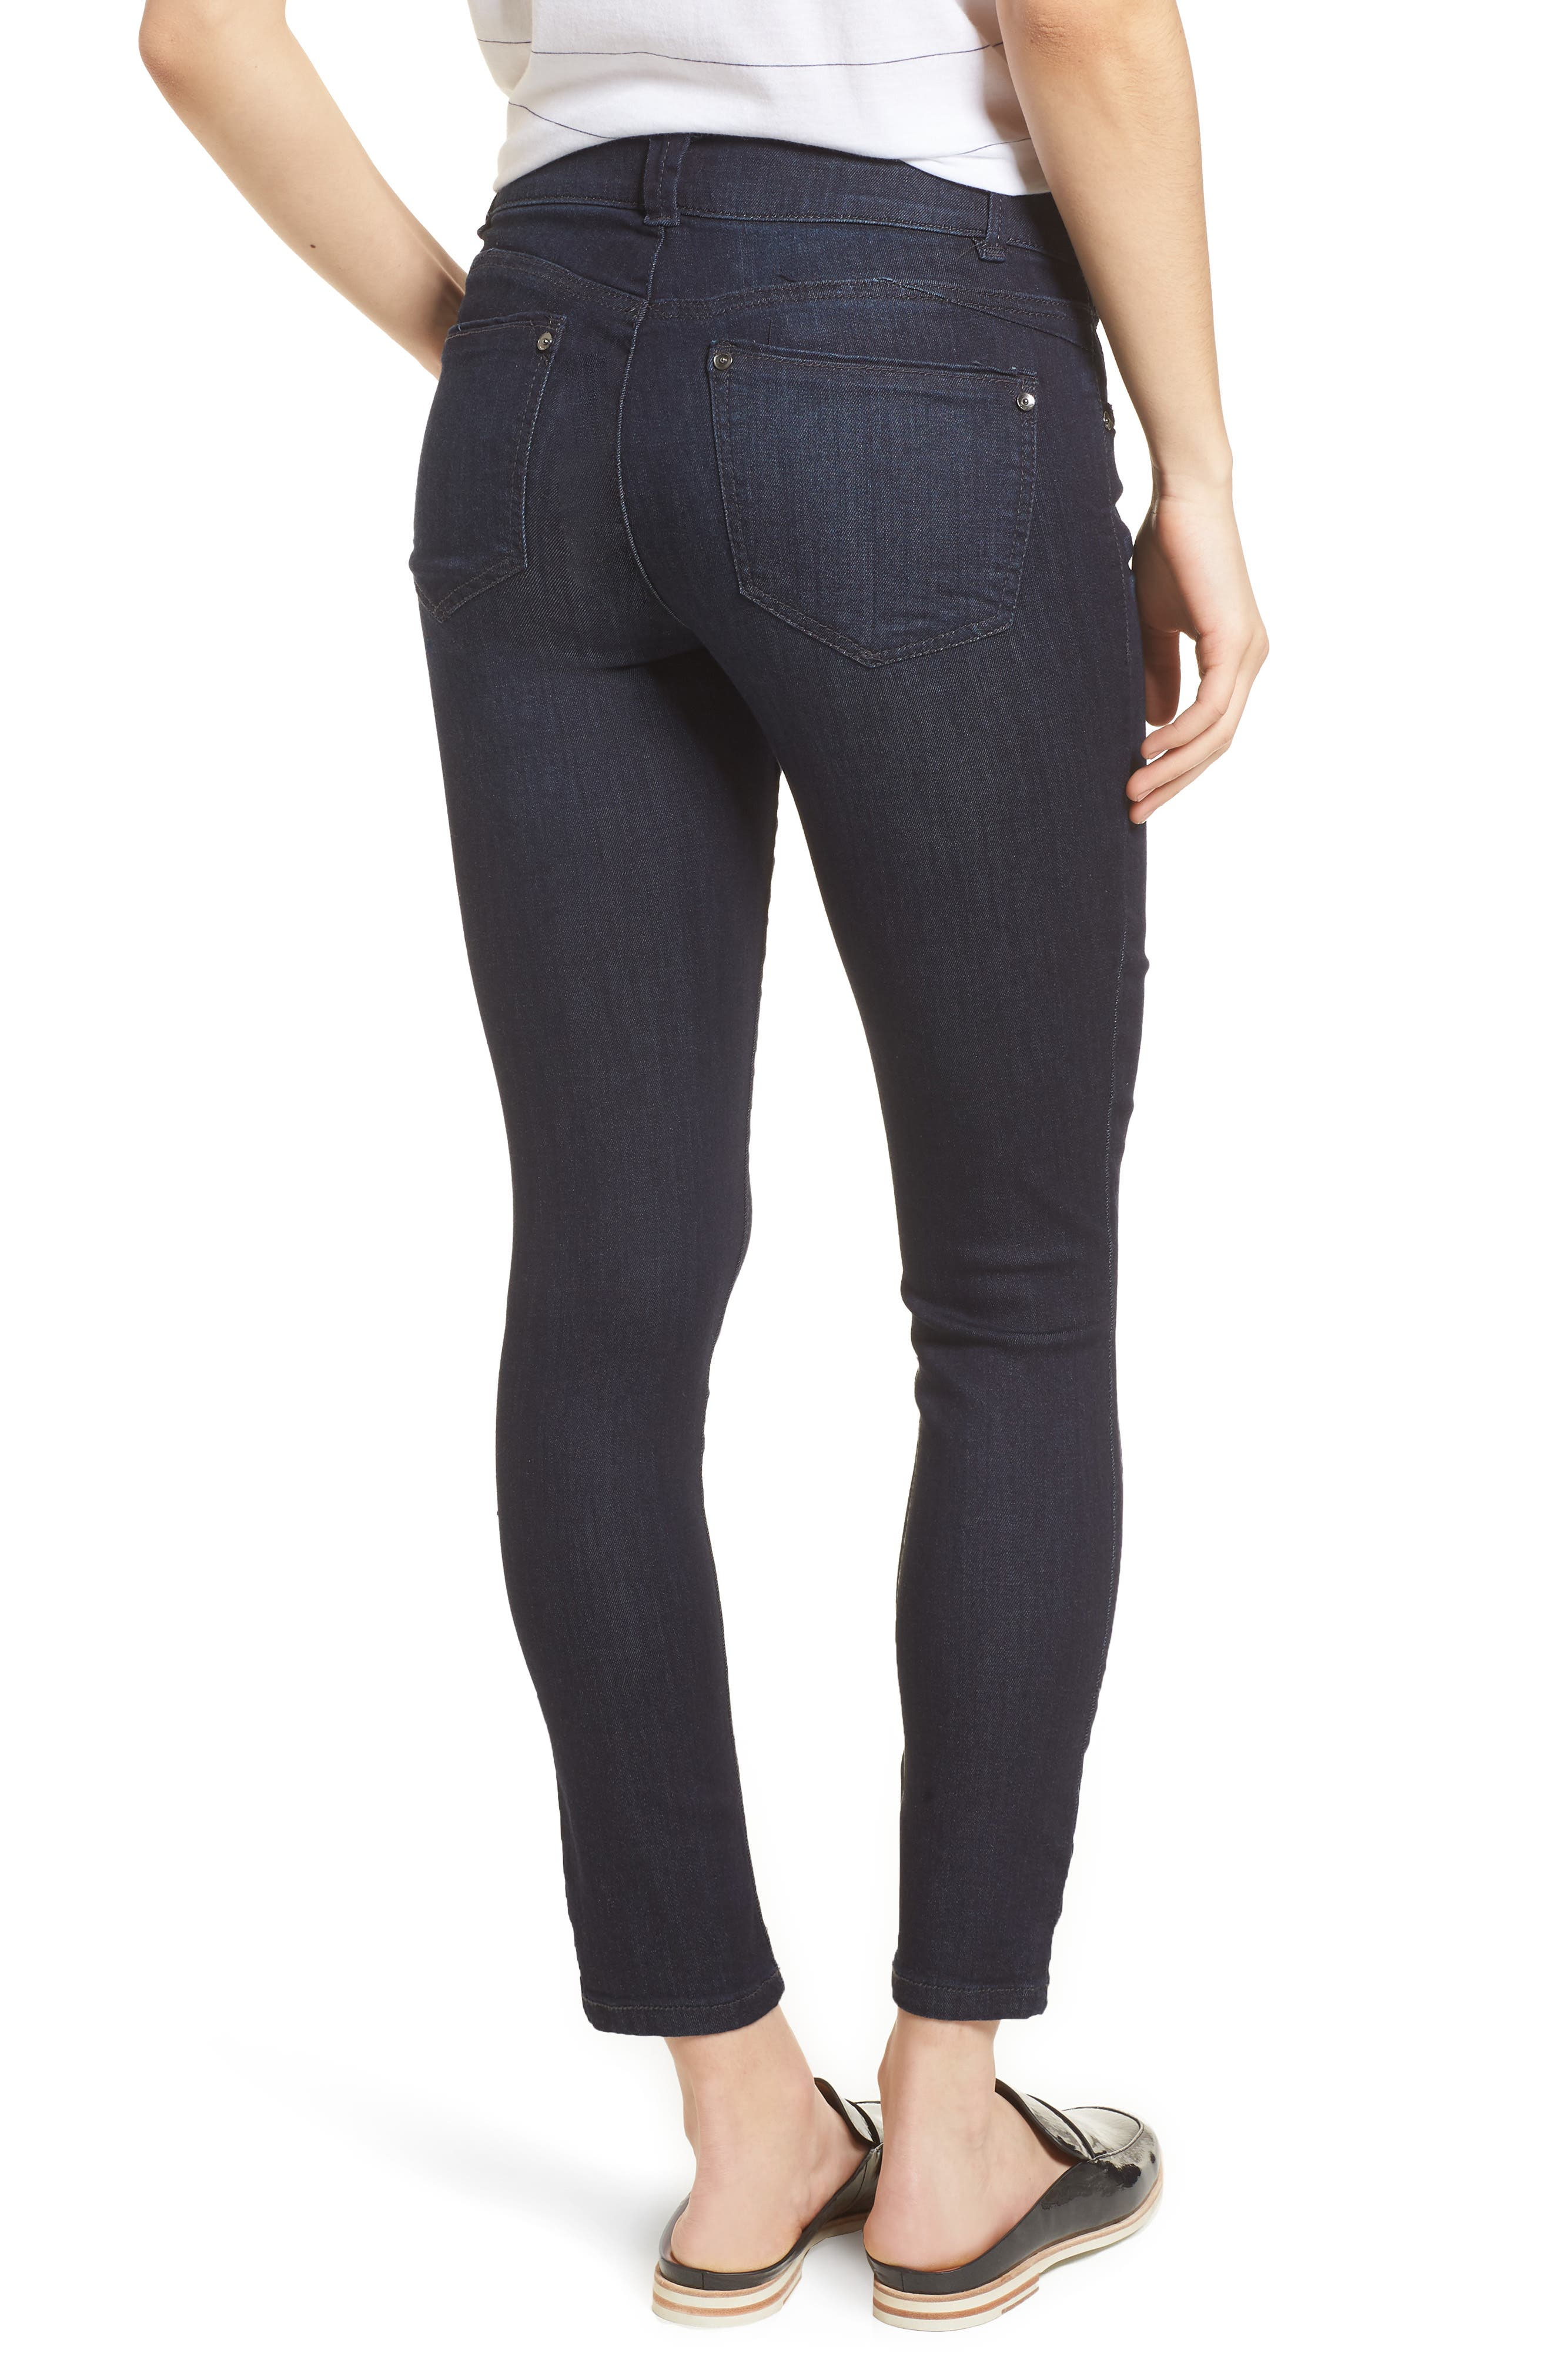 Ab-solution Ankle Skimmer Jeans,                             Alternate thumbnail 2, color,                             In- Indigo